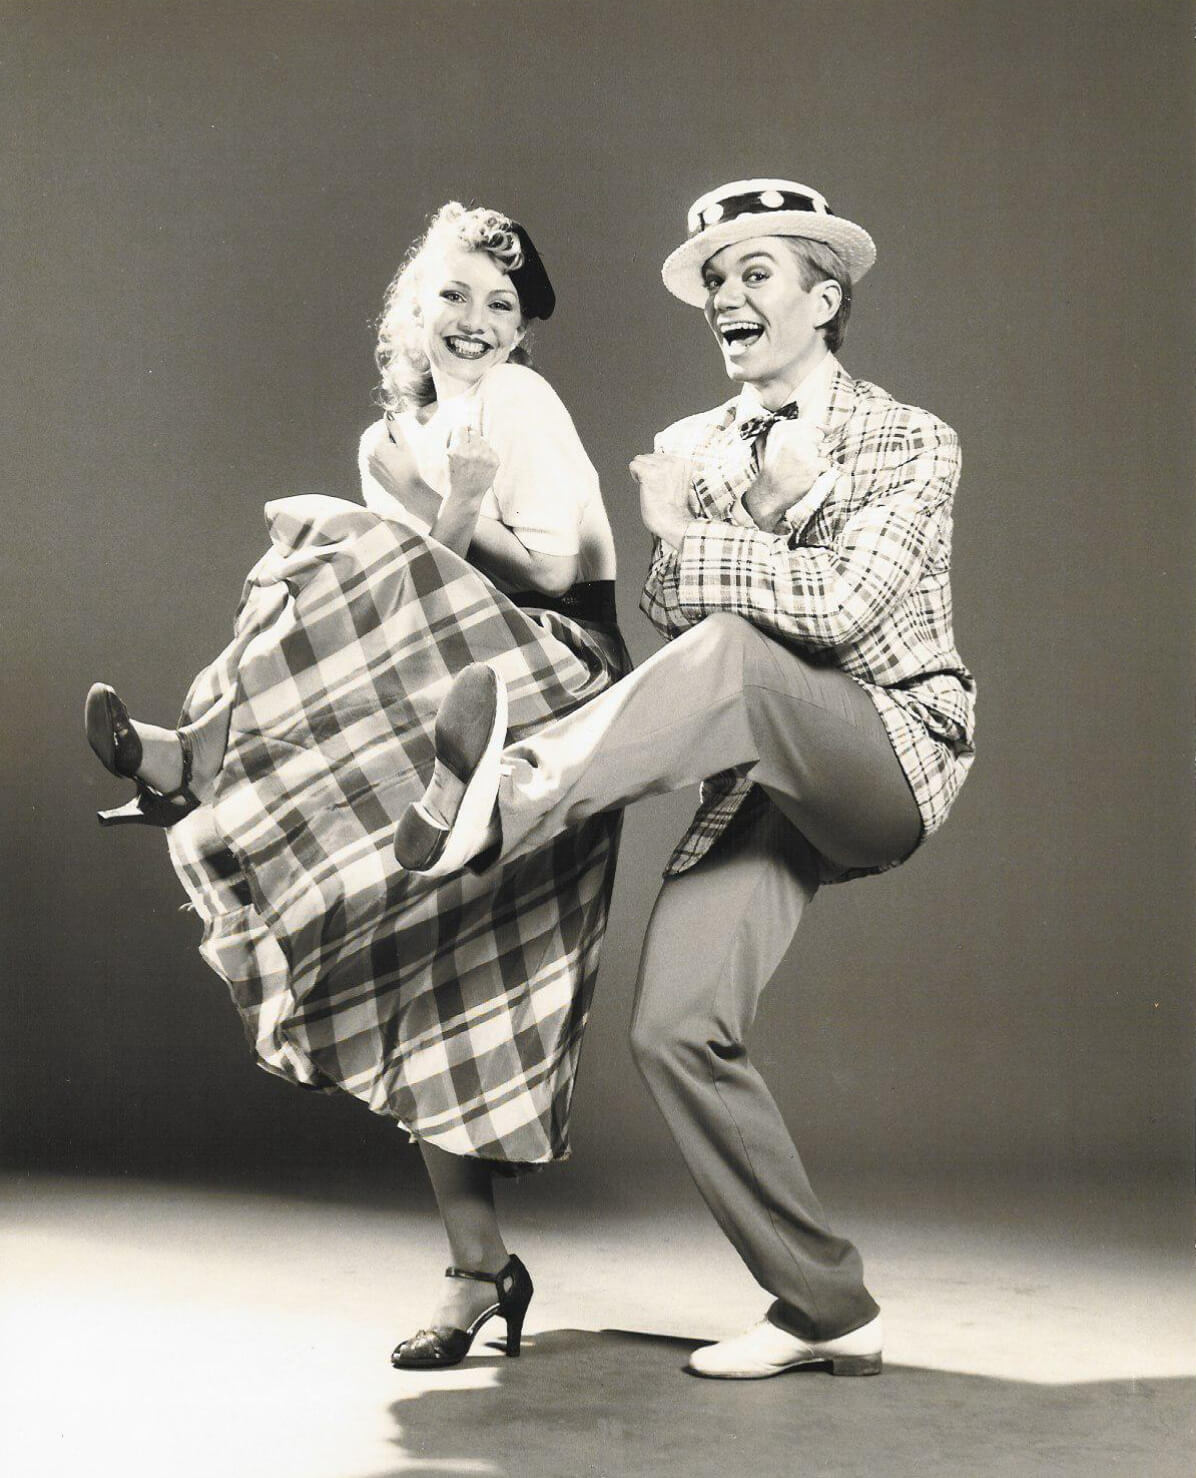 """Susan Stroman and Jeff Veazey dance to, """"How Could You Believe Me When I said ILove You When You Know I've Been A Liar All My Life?"""" They are doing a vaudeville dance step."""